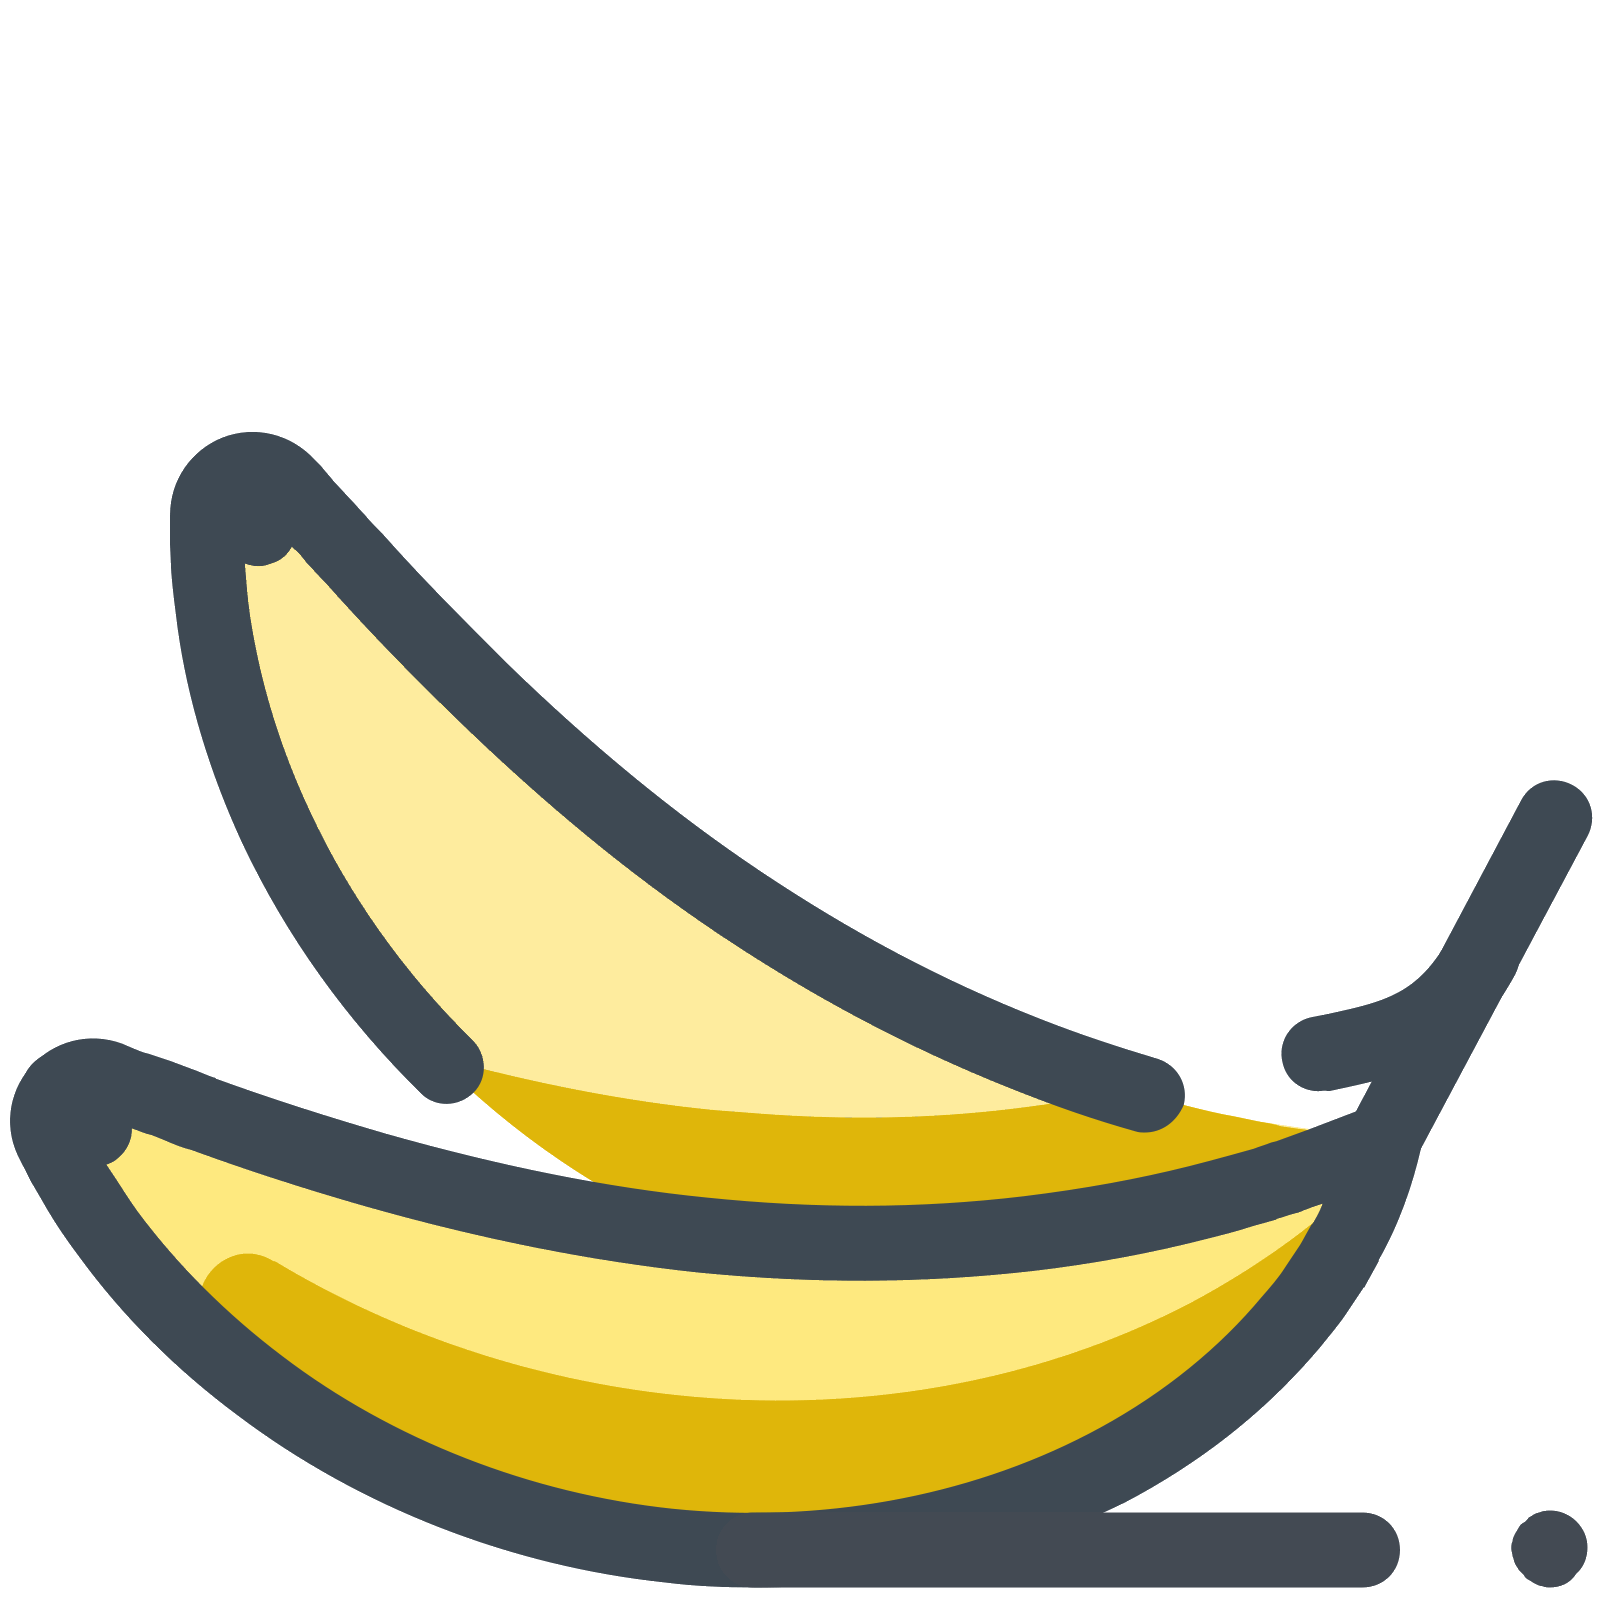 image freeuse library Bananas vector flat design. Banana icon best ideas